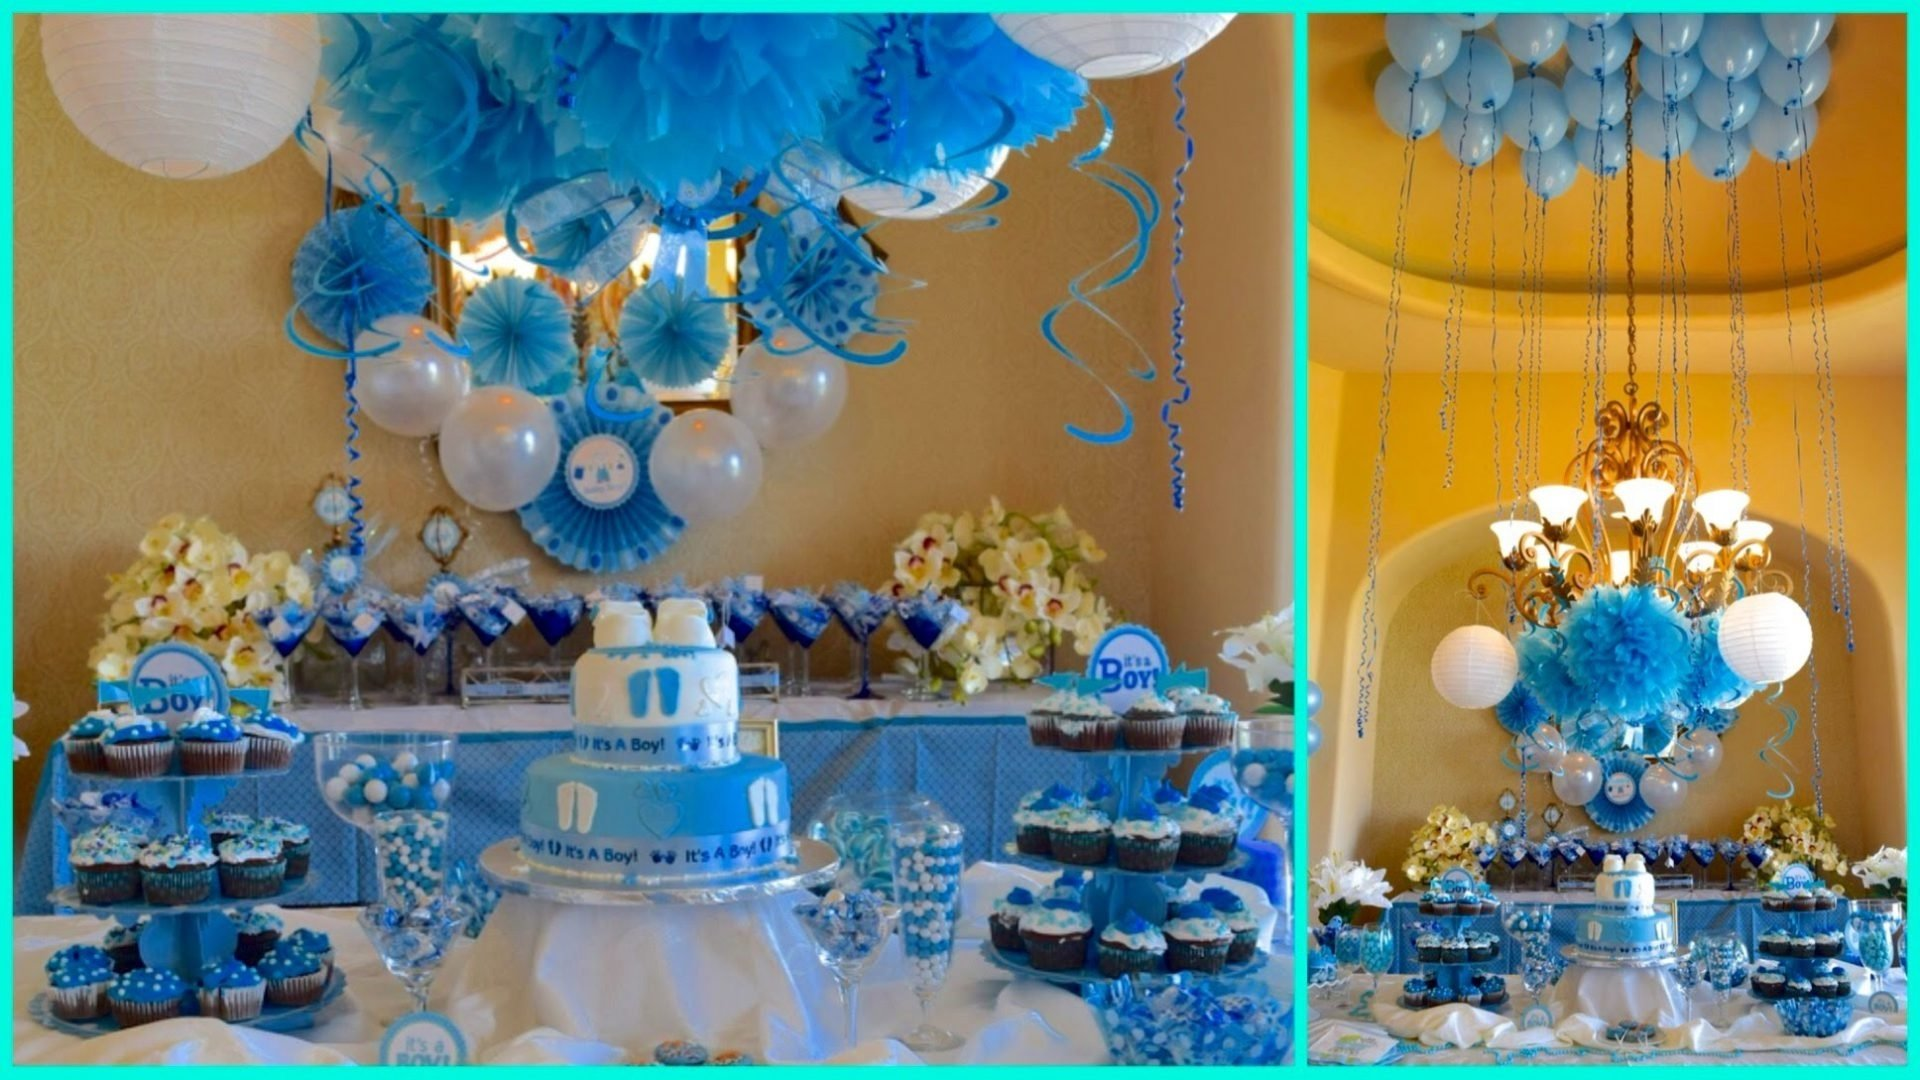 10 Attractive Baby Shower Ideas For Boys On A Budget magnificent baby shower ideas for boy ducky showers rubber diy 2020